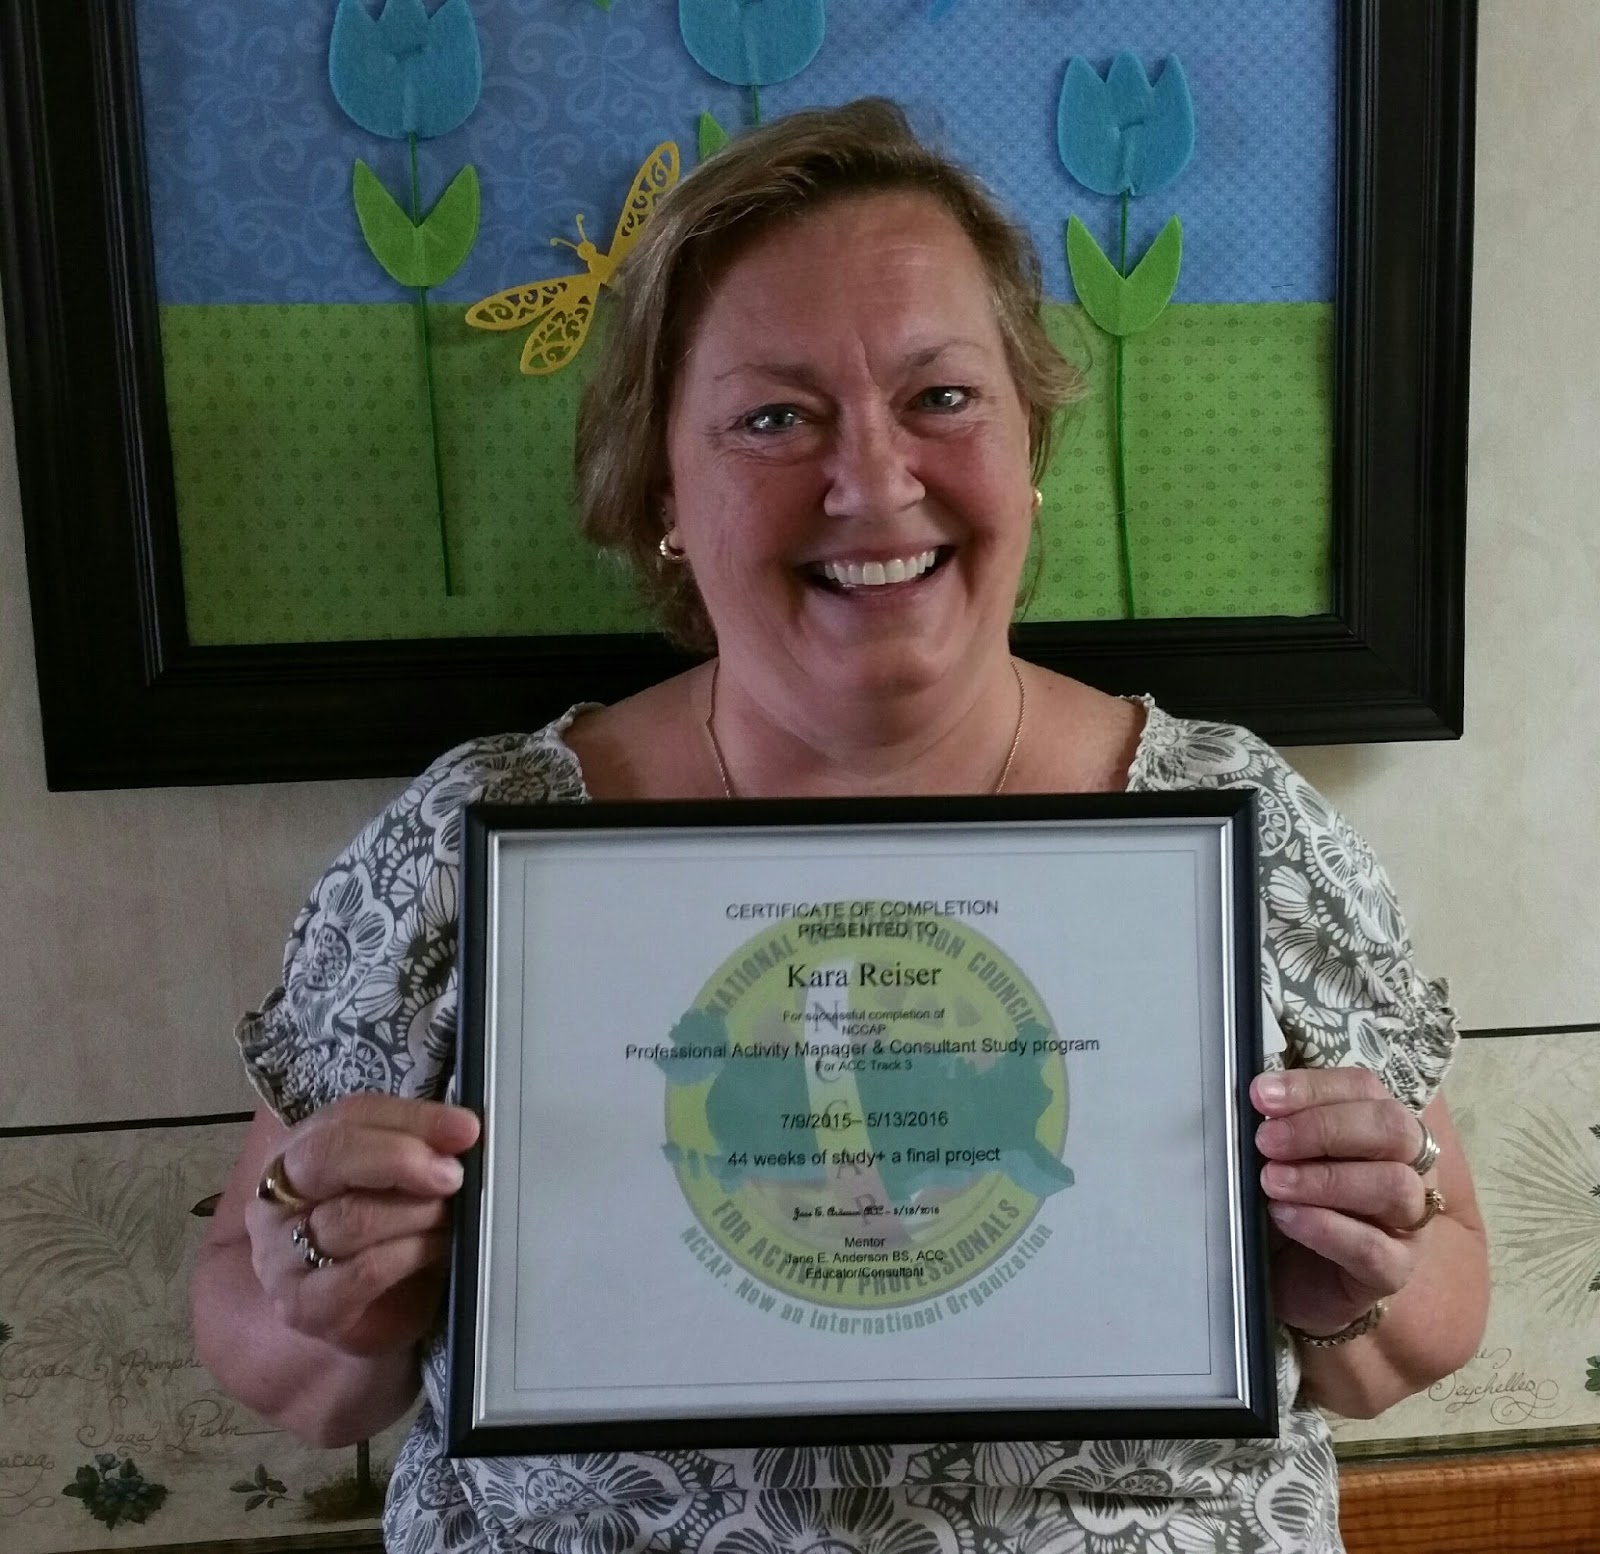 Activity courses may 2016 track 3 httpnccap her mentor was jane anderson bs acc httpactivitydirectorweebly kara is the activity director certified for anoka xflitez Gallery